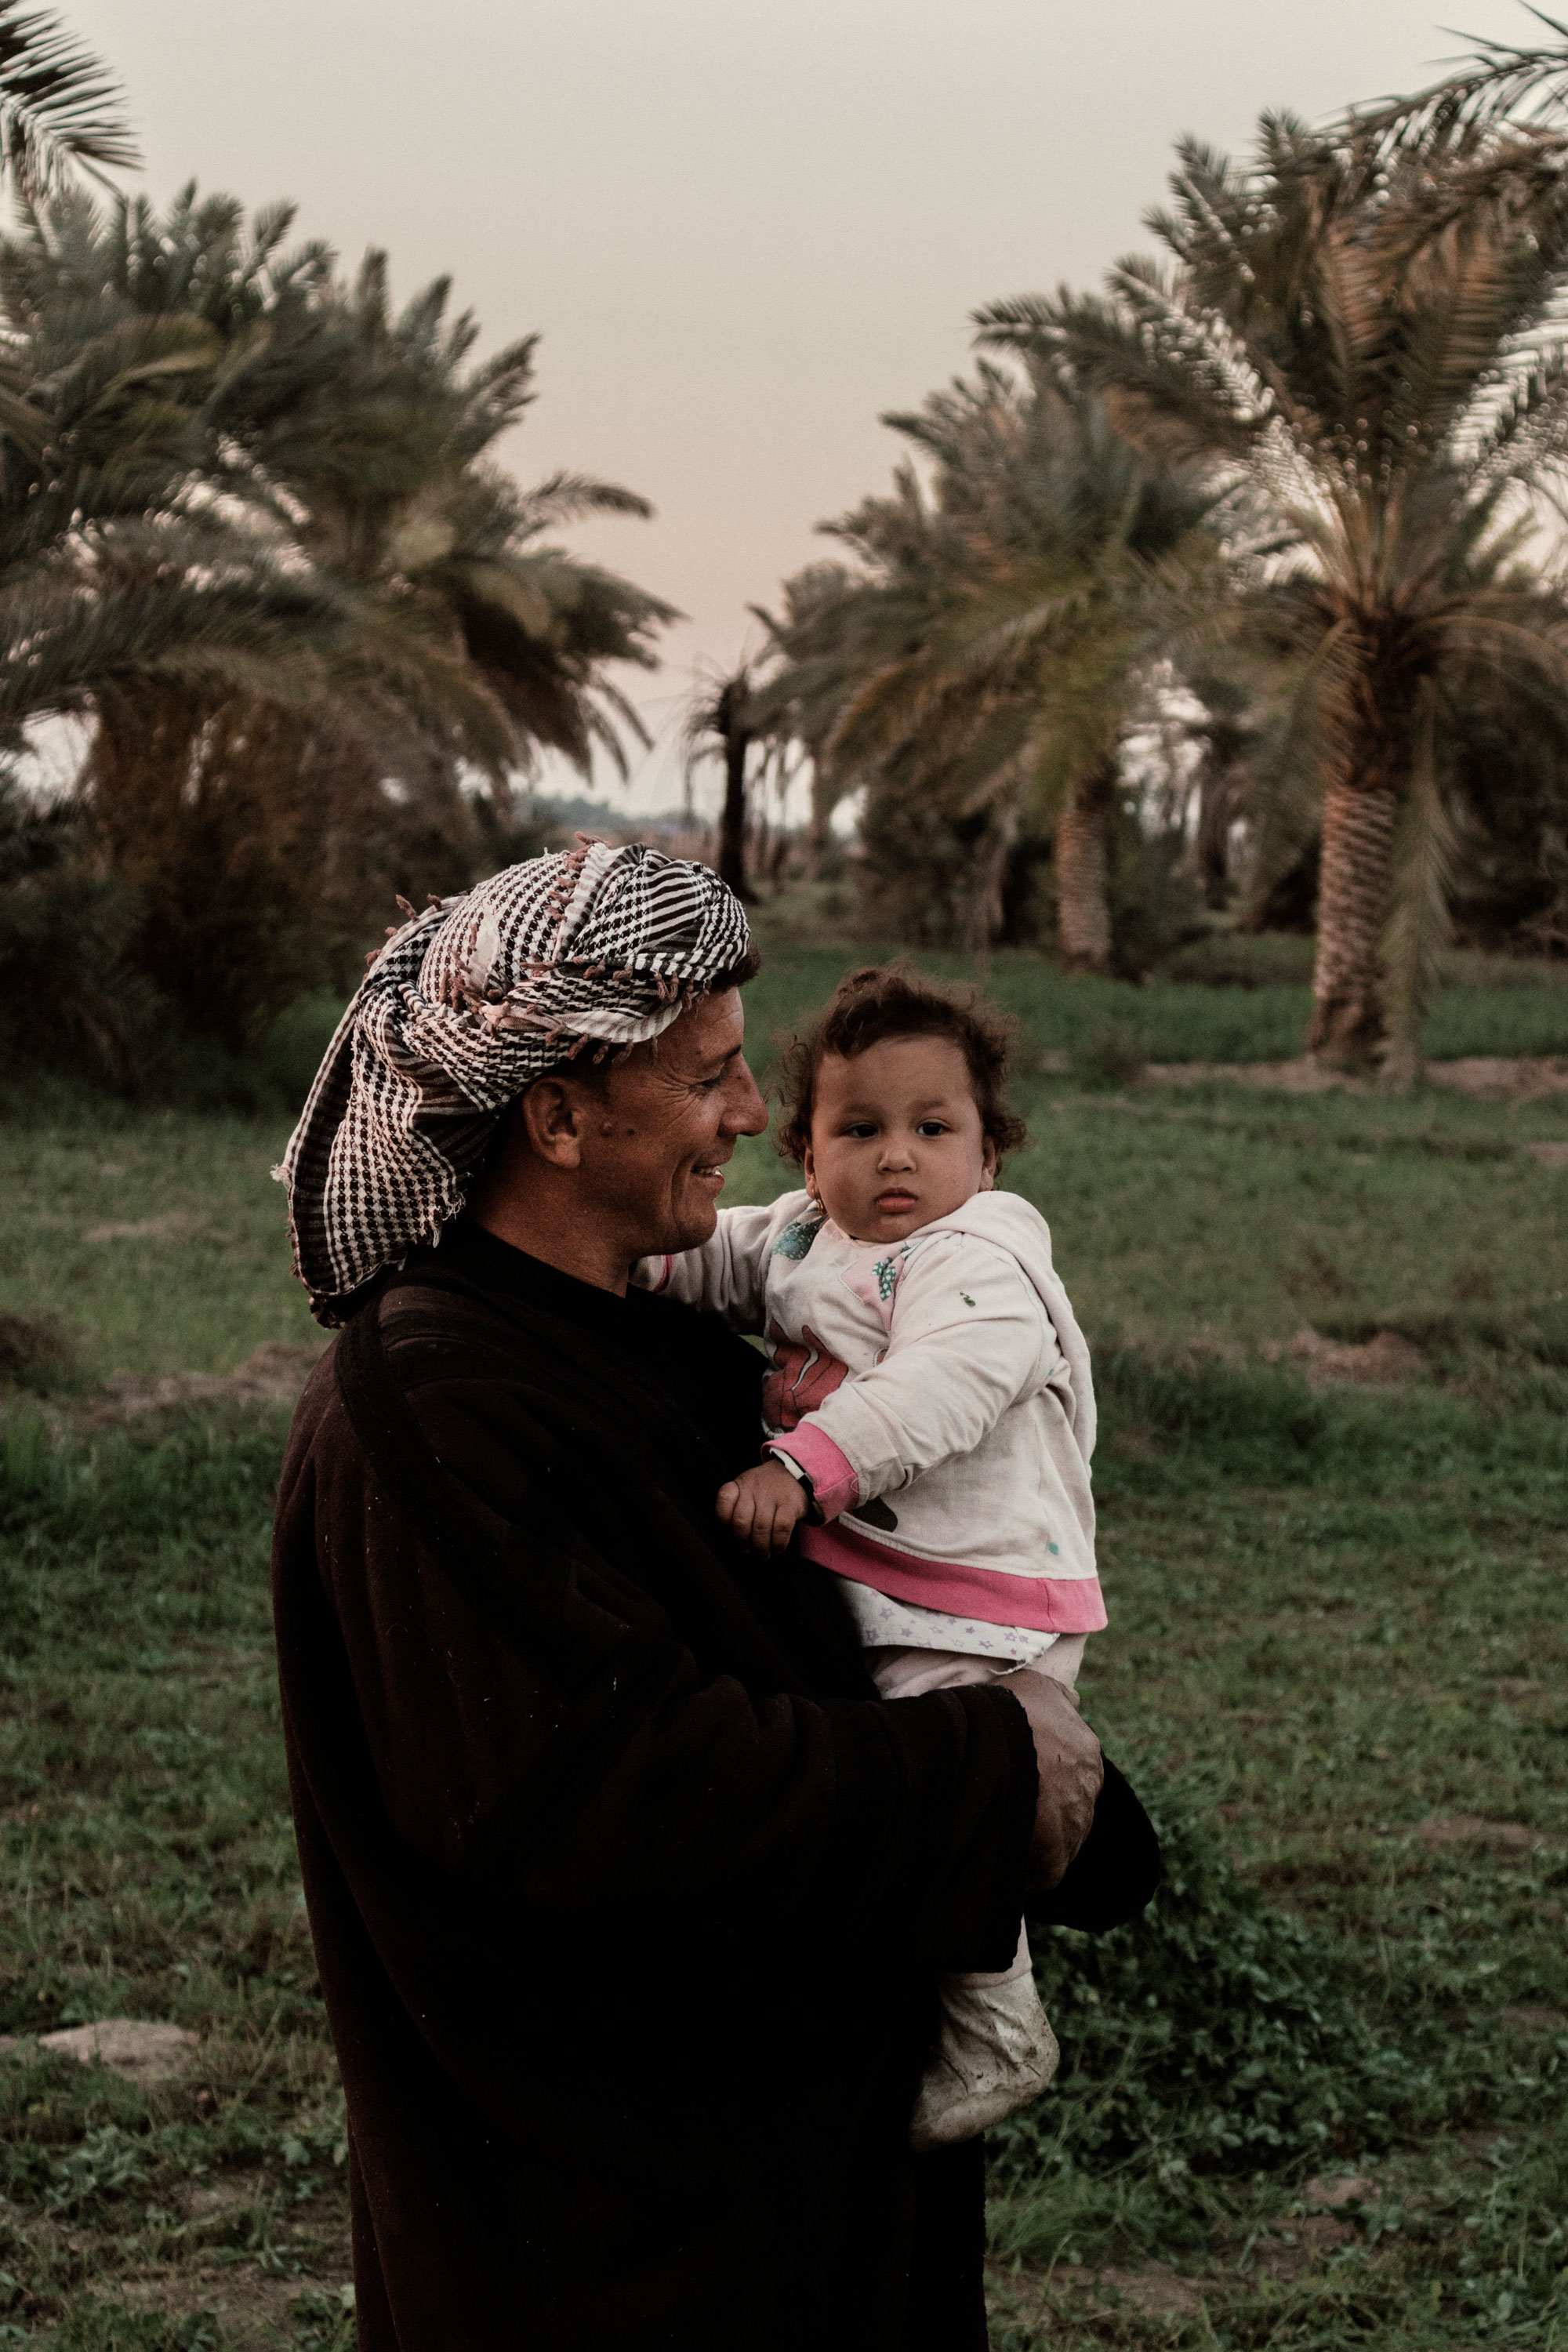 A father holds his child amidst a lush scene of palm trees in Iraq.